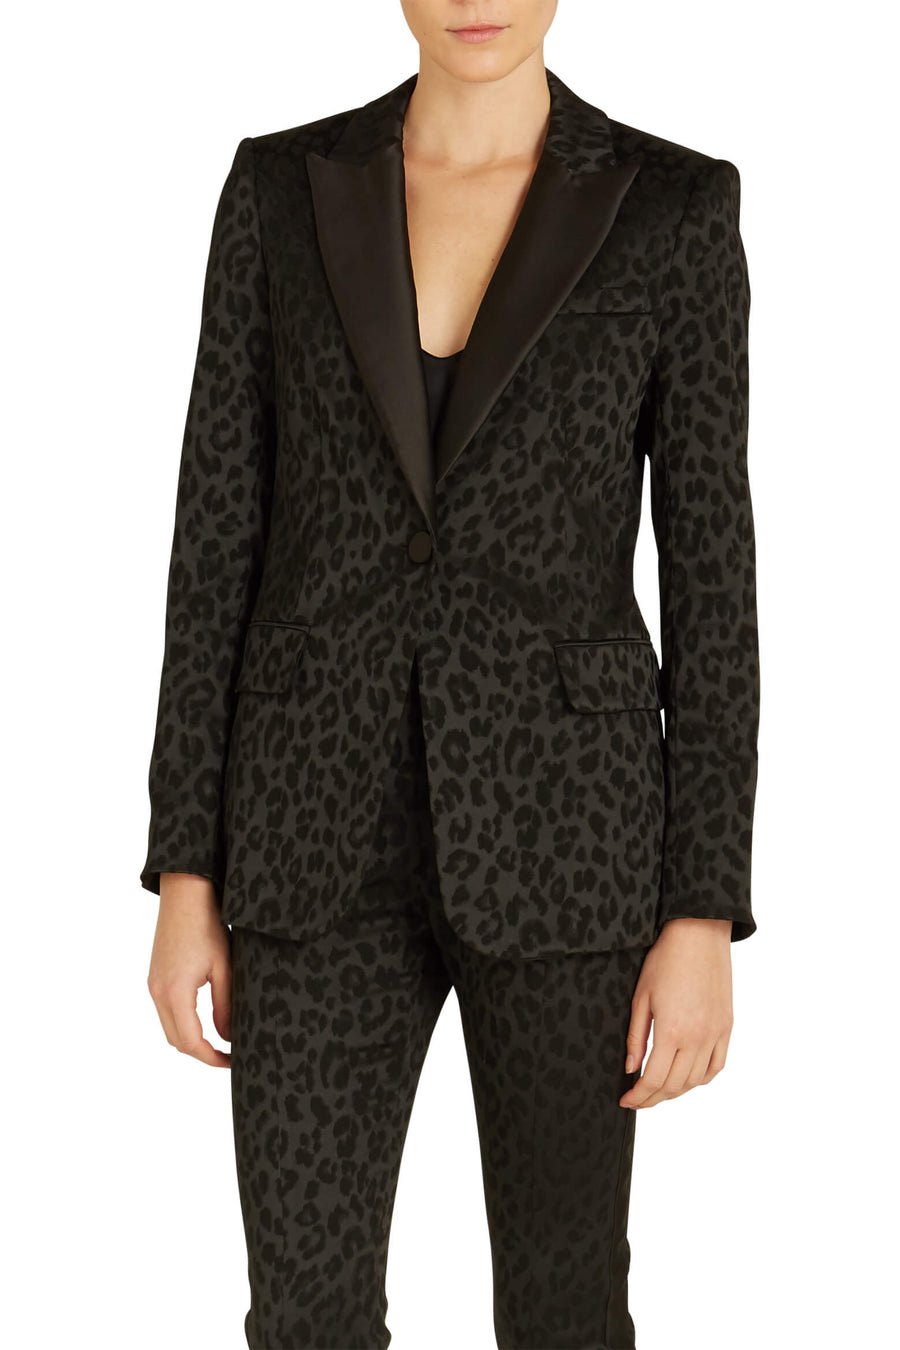 Veronica Beard Ashburn Dickey Jacket in black leopard from The New Trend